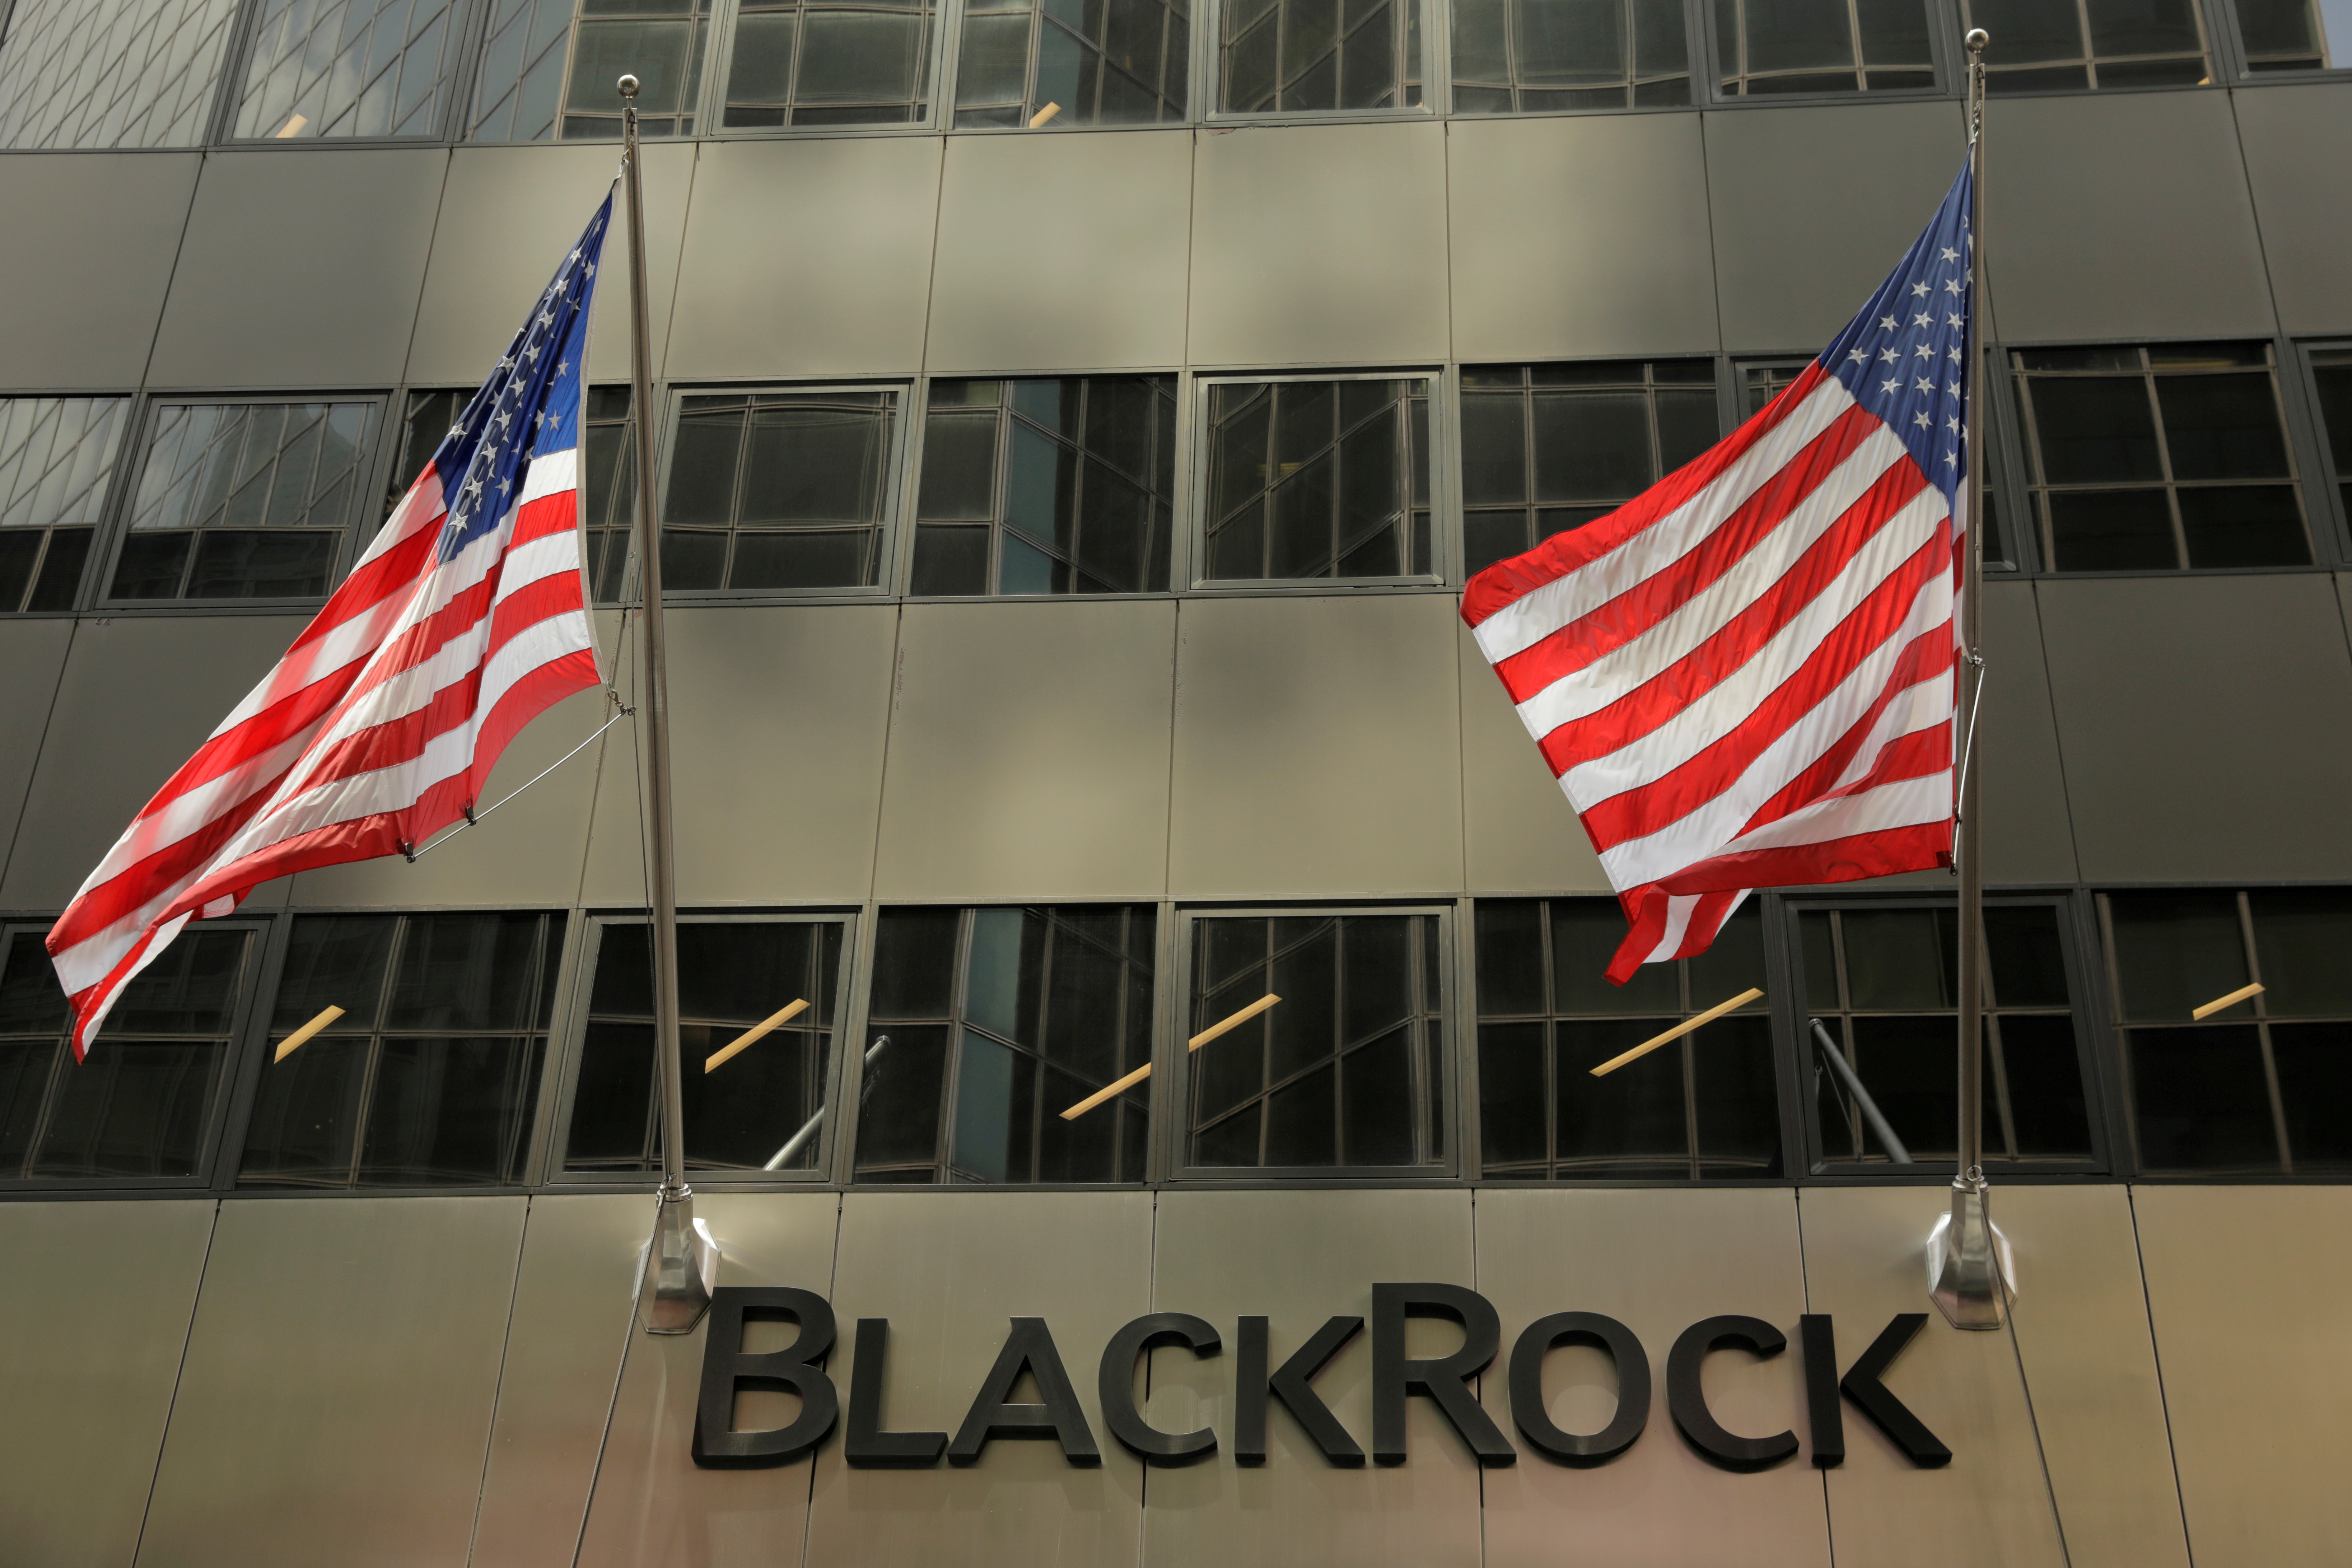 A sign for BlackRock Inc hangs above their building in New York U.S., July 16, 2018. REUTERS/Lucas Jackson